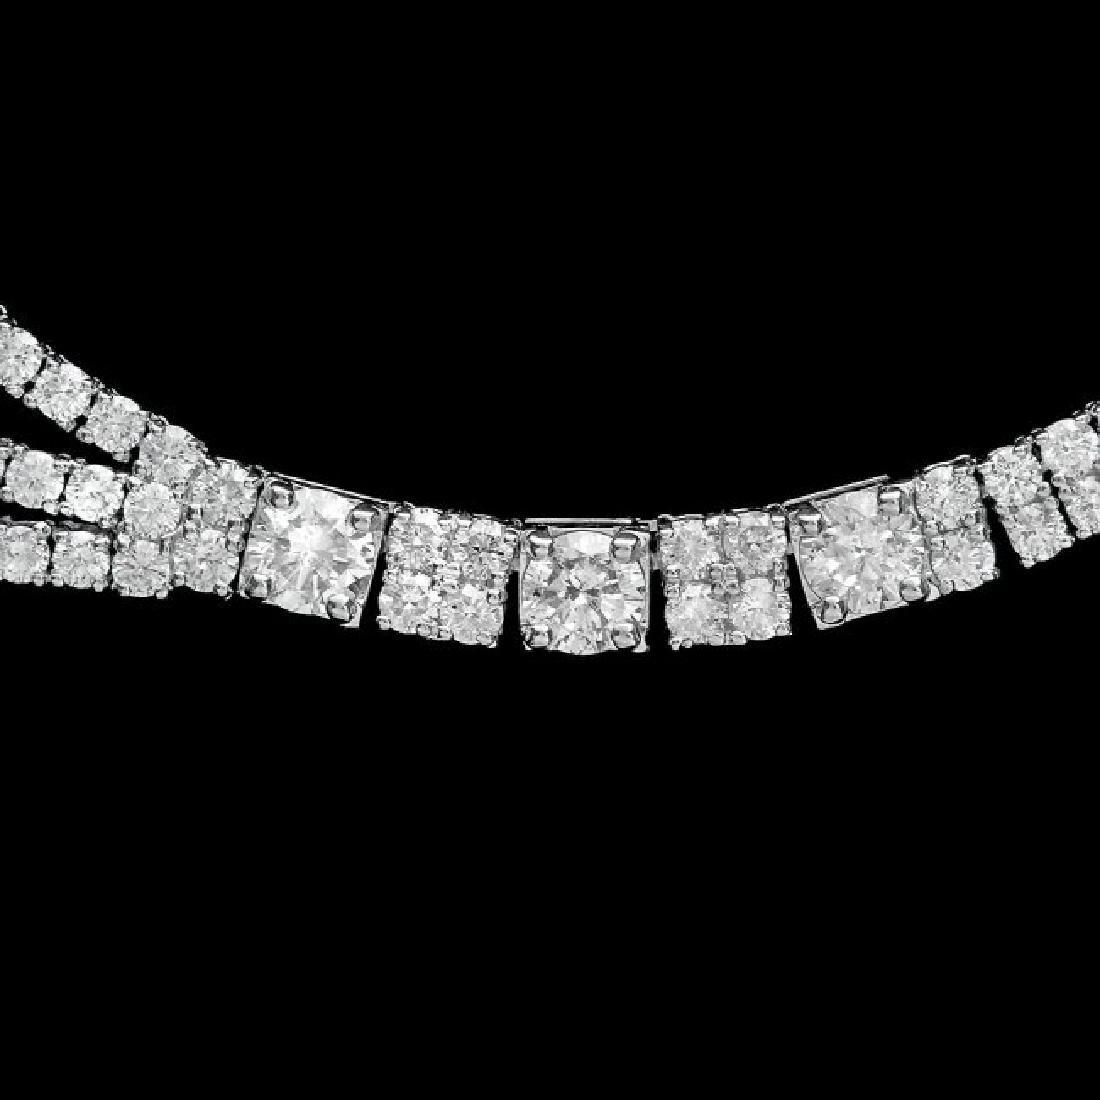 18k White Gold 23.10ct Diamond Necklace - 4